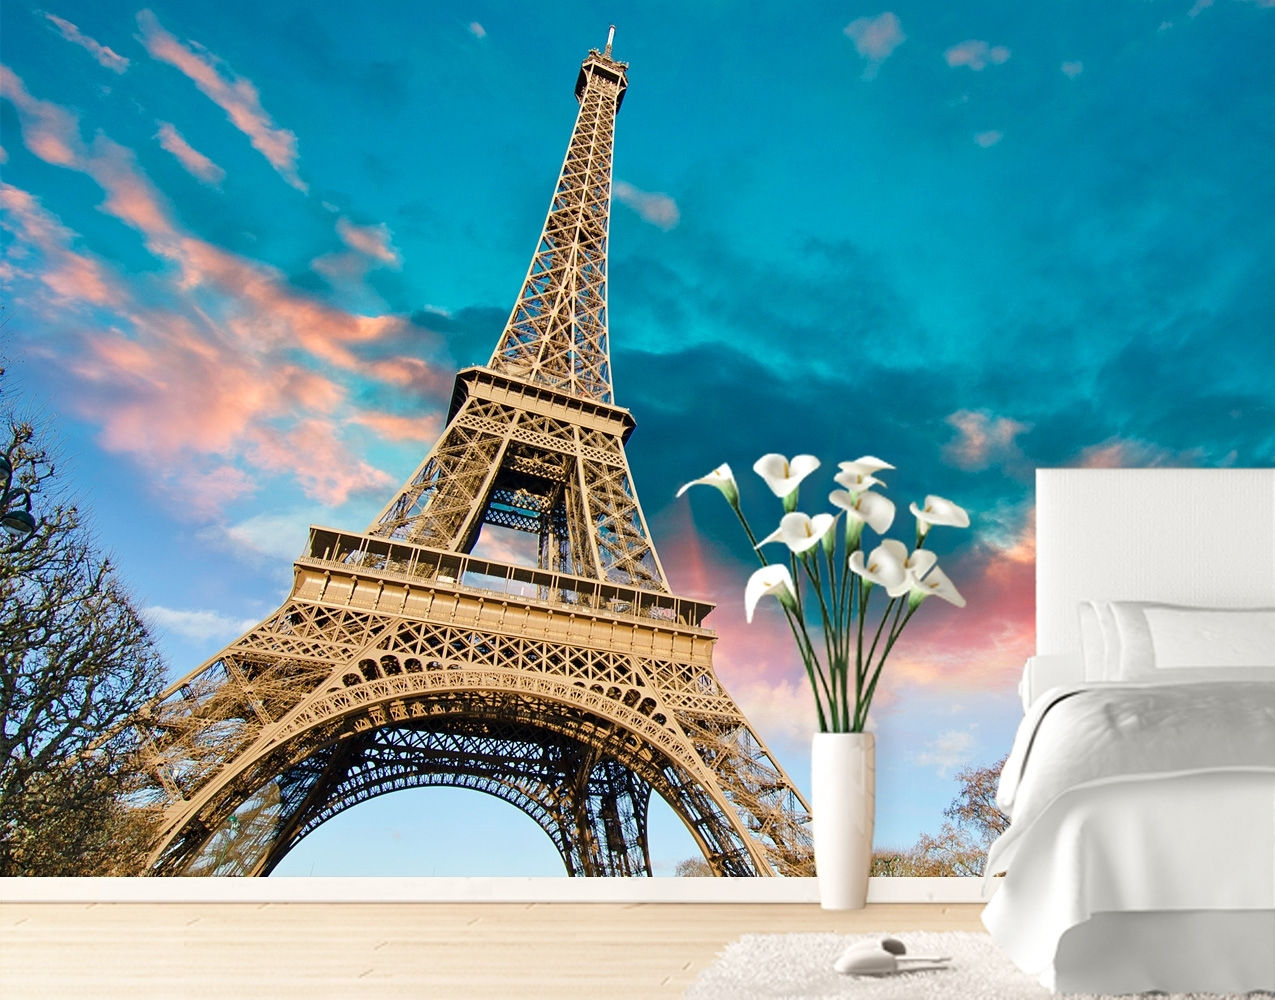 Eiffel Tower Wall Mural – Your Decal Shop   Nz Designer Wall Art With Regard To Eiffel Tower Wall Art (Photo 15 of 20)